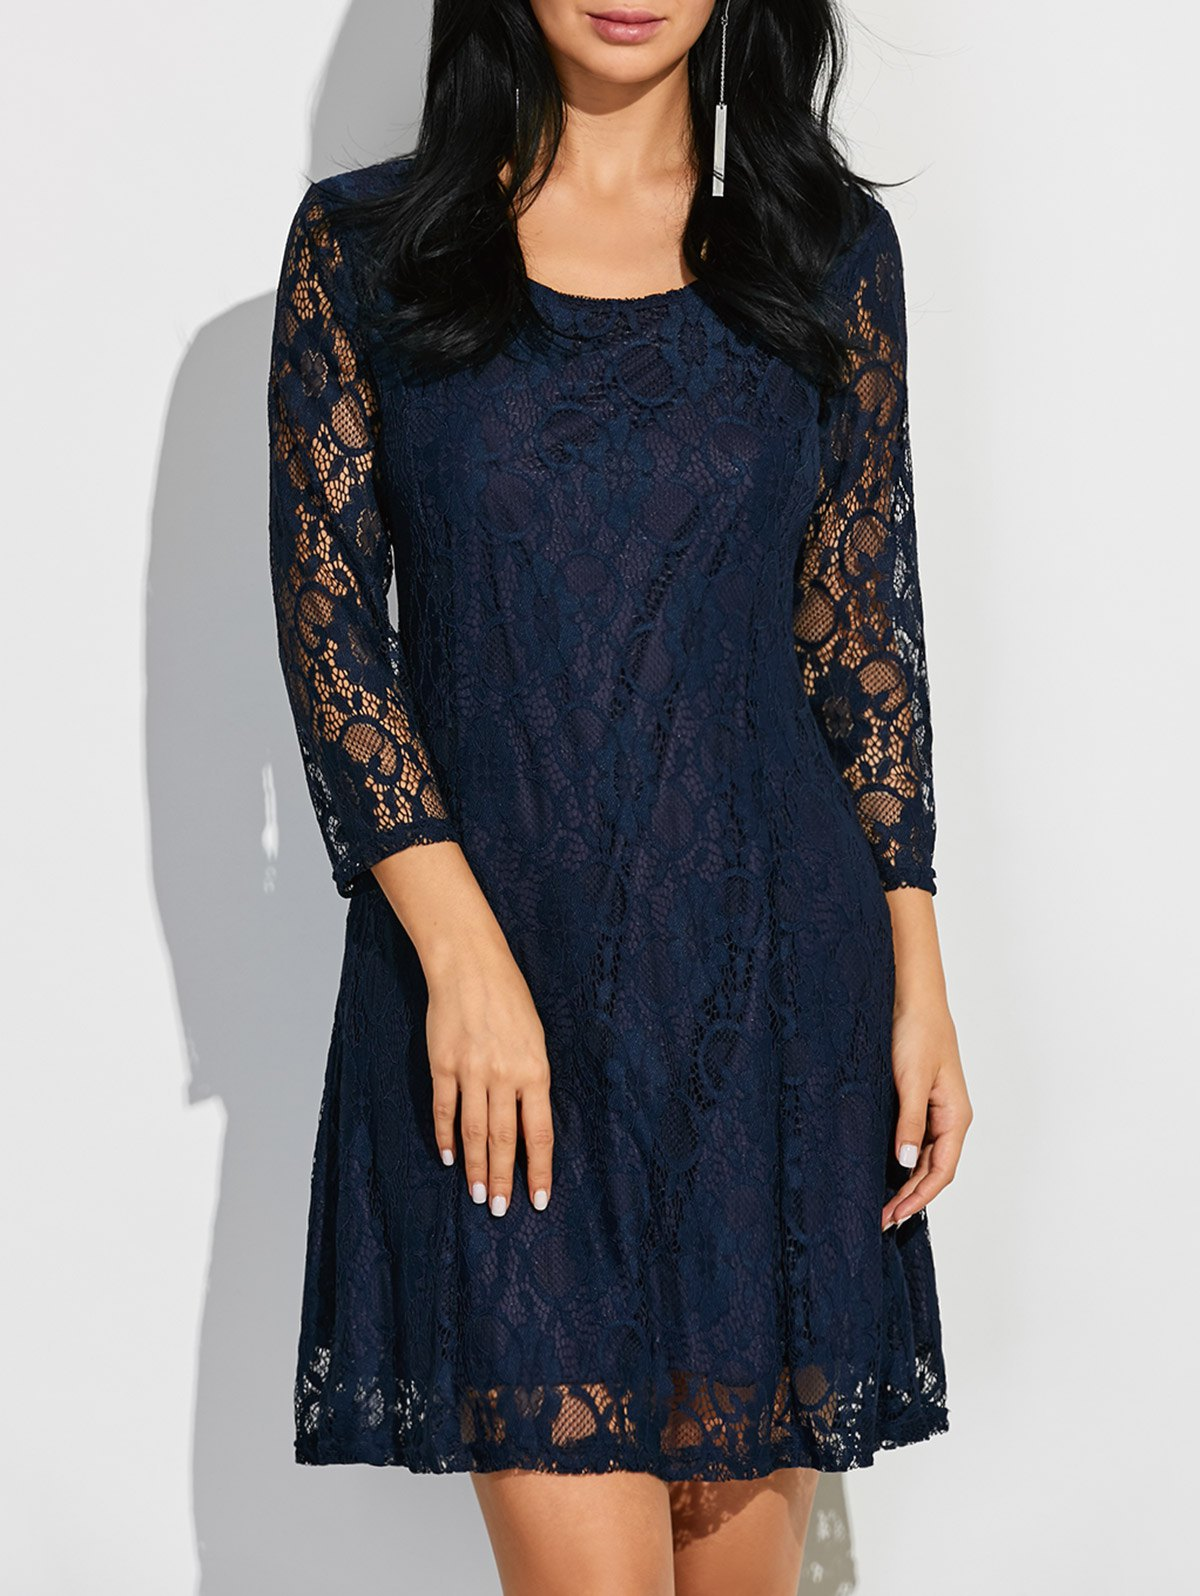 Short Lace Dress With Sleeves - Purplish blue